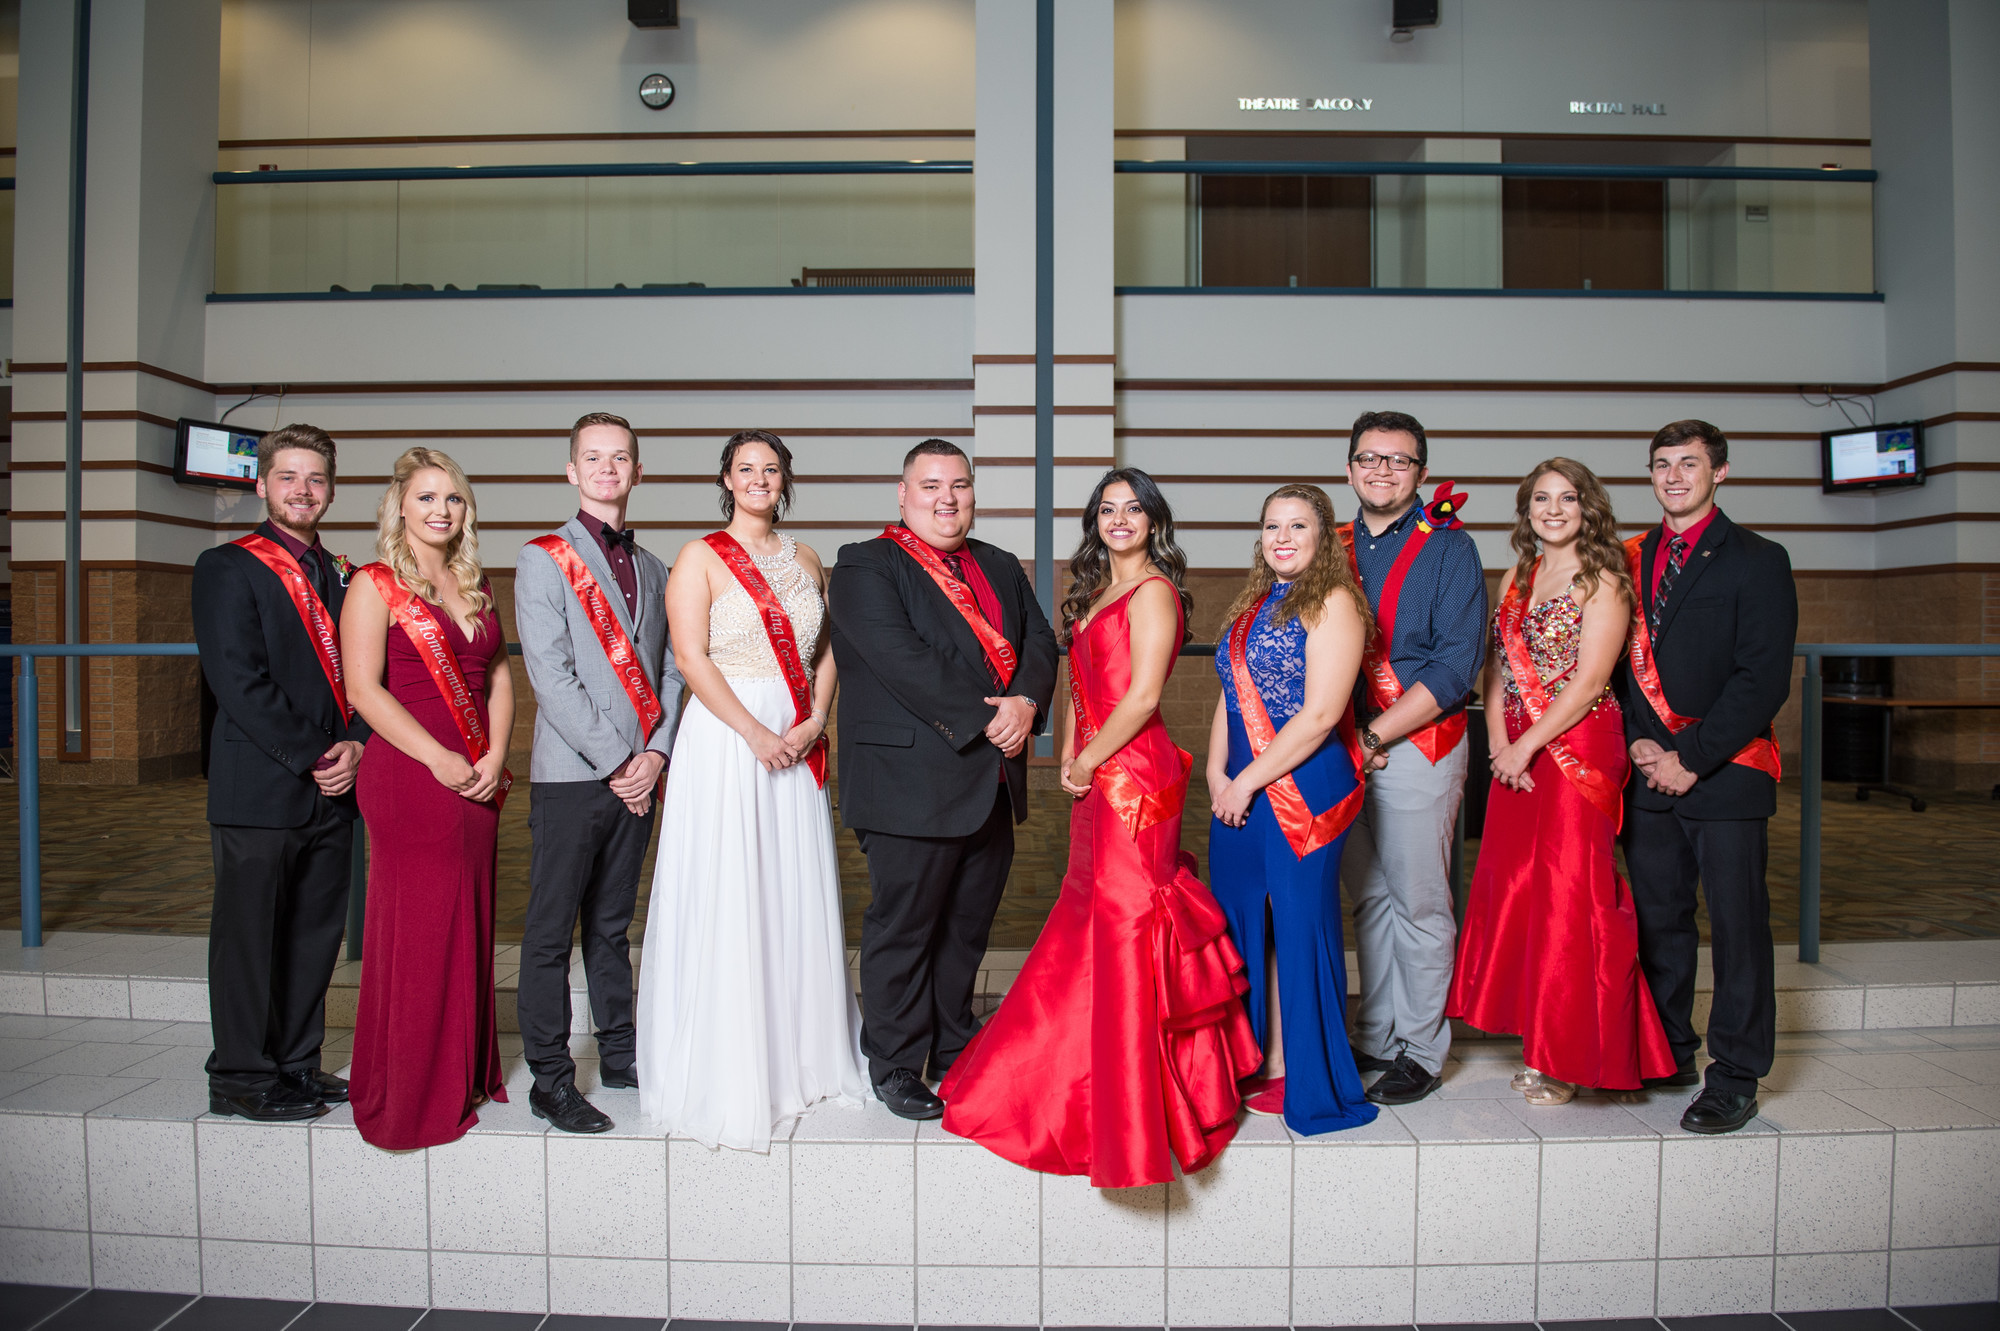 Rs695505 239   homecoming court 10 14 by michael randolph dsc 5720 lpr